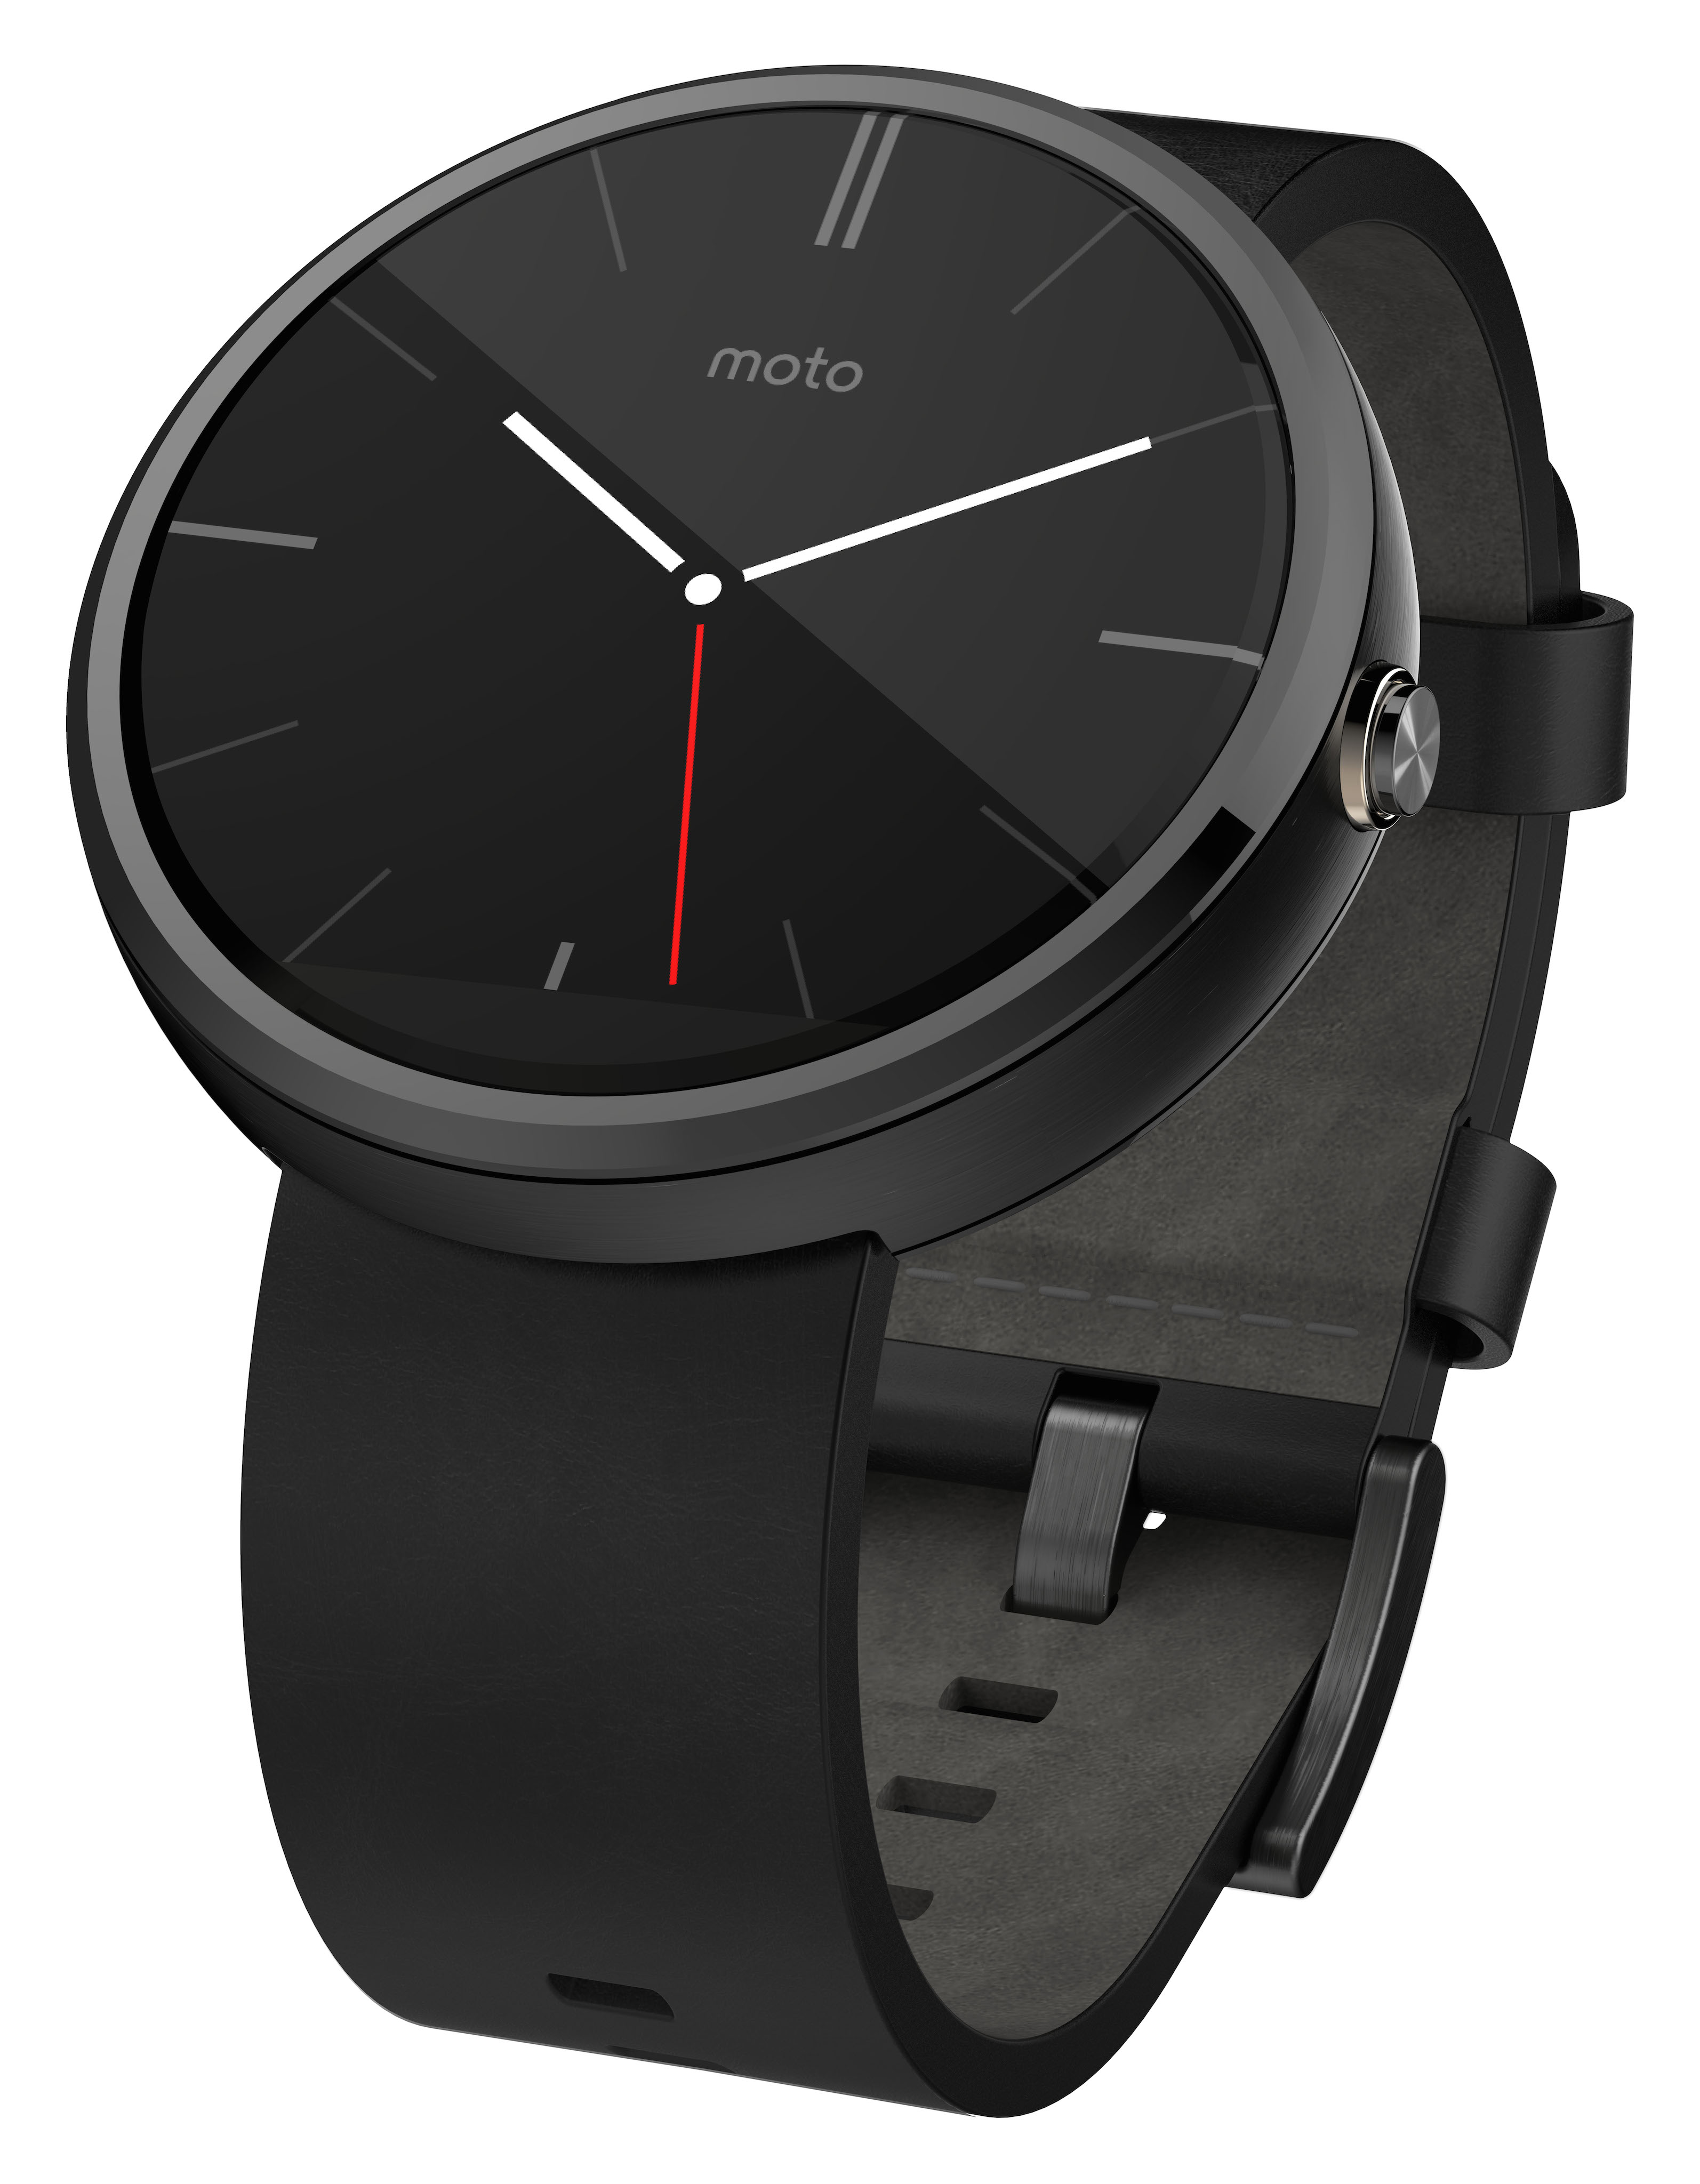 Buy The Moto 360 Today For 250 At These 3 Locations